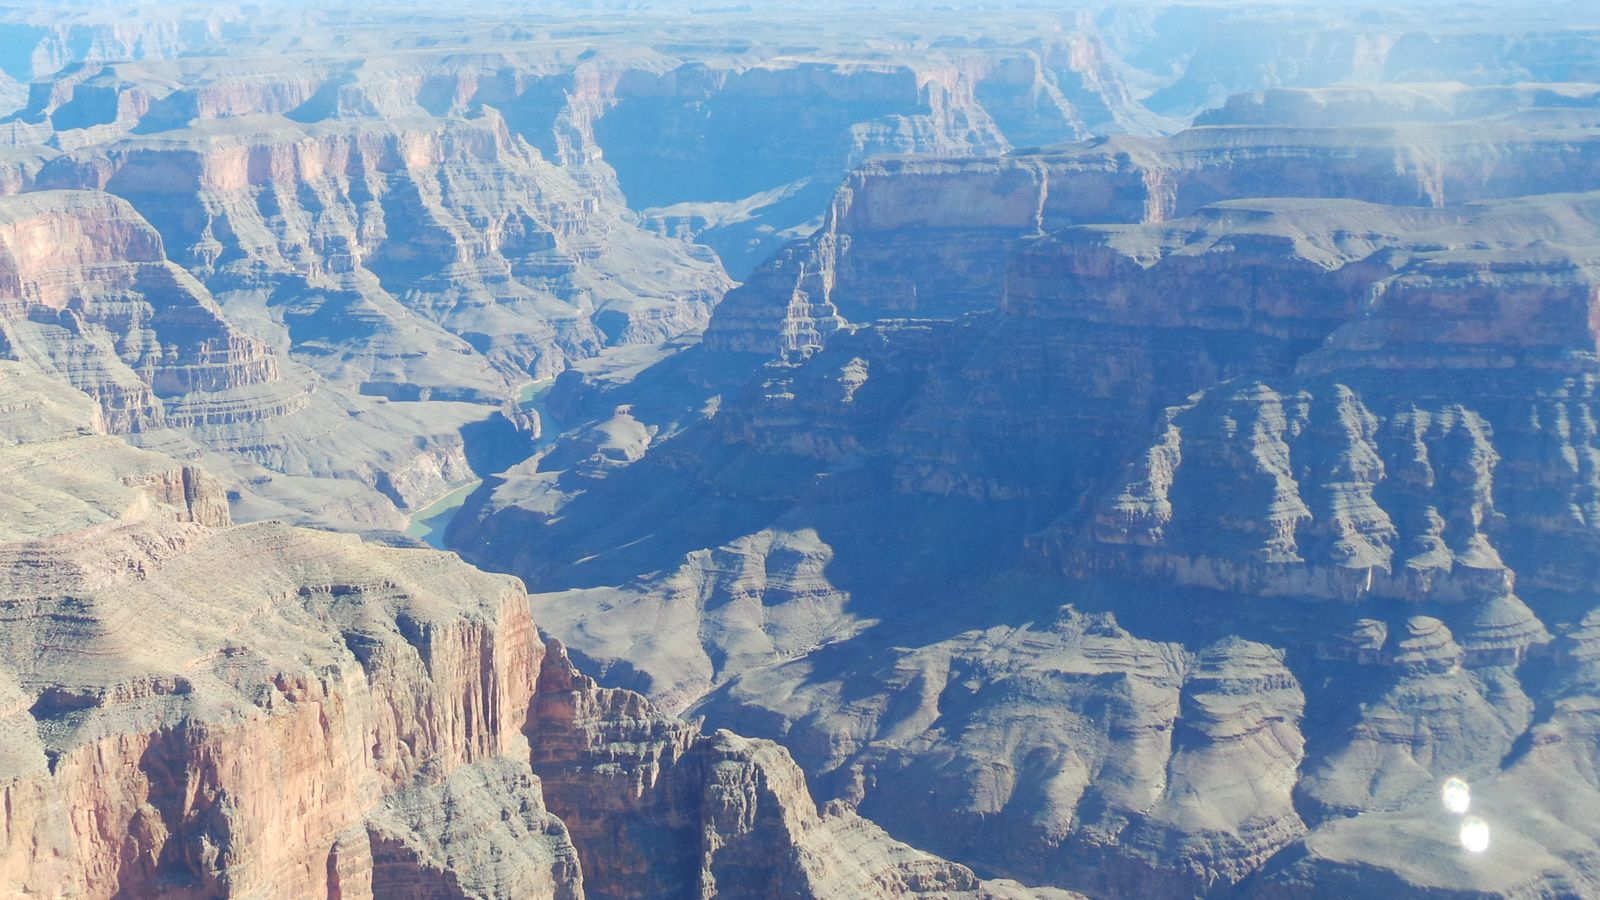 Le Grand Canyon vu d'en haut.....prend ses galons fashion !